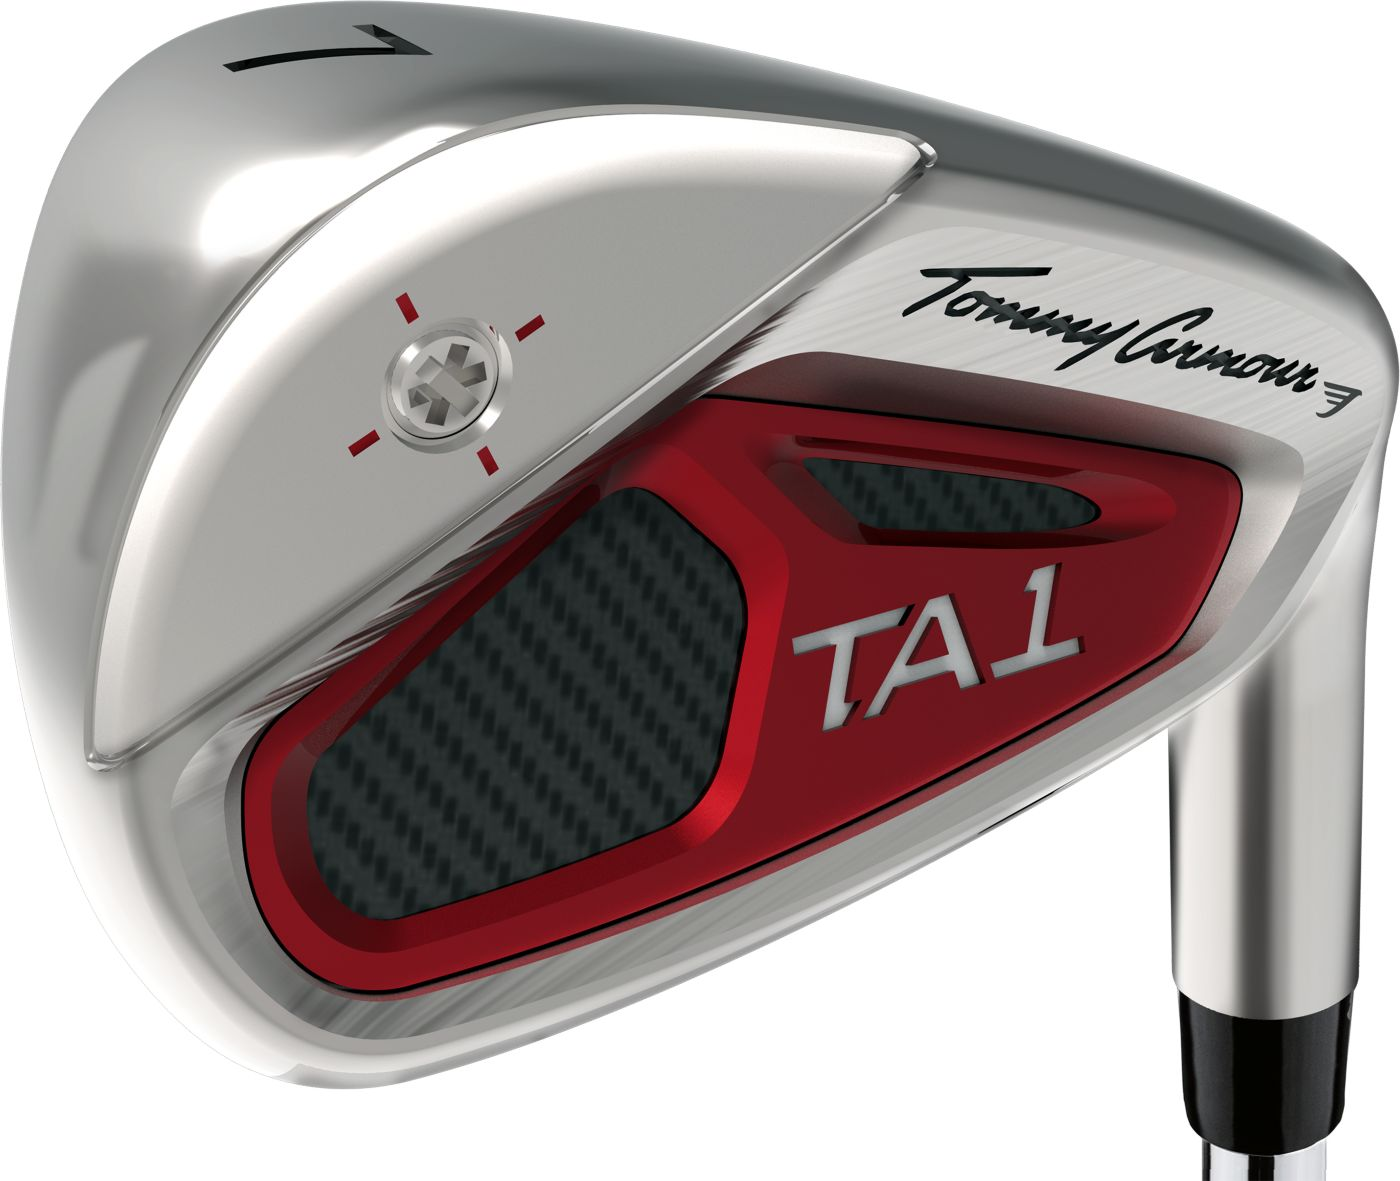 Tommy Armour TA1 Irons – (Steel)